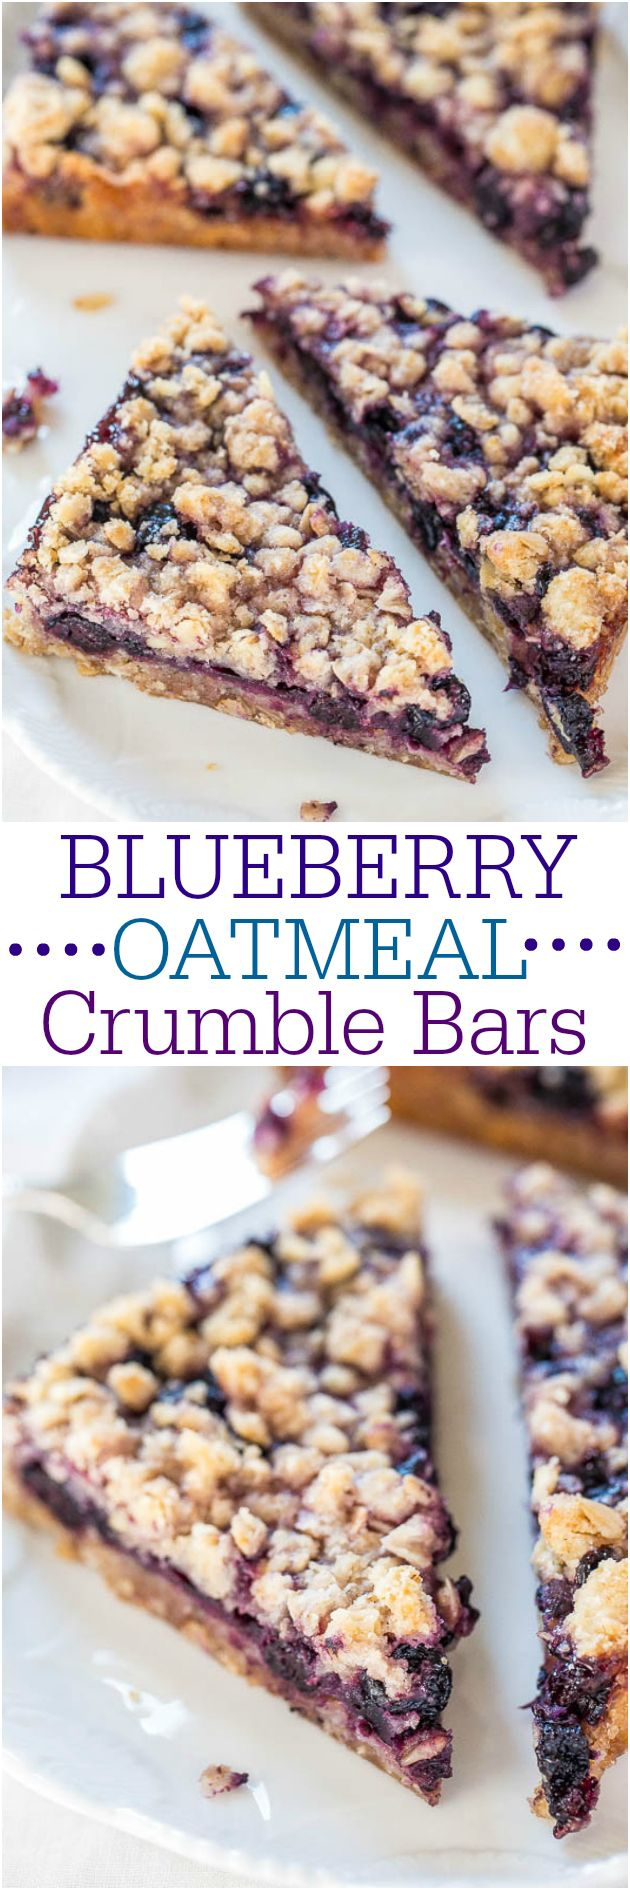 Blueberry Oatmeal Crumble Bars - Fast, easy, no-mixer bars great for breakfast, snacks, or a healthy dessert! BIG crumbles and juicy berries are irresistible!! If you looking for more clean eating recipes check out-> yummspiration.com We have some Vegan & Raw recipes too :) We are also on facebook.com/yummspiration